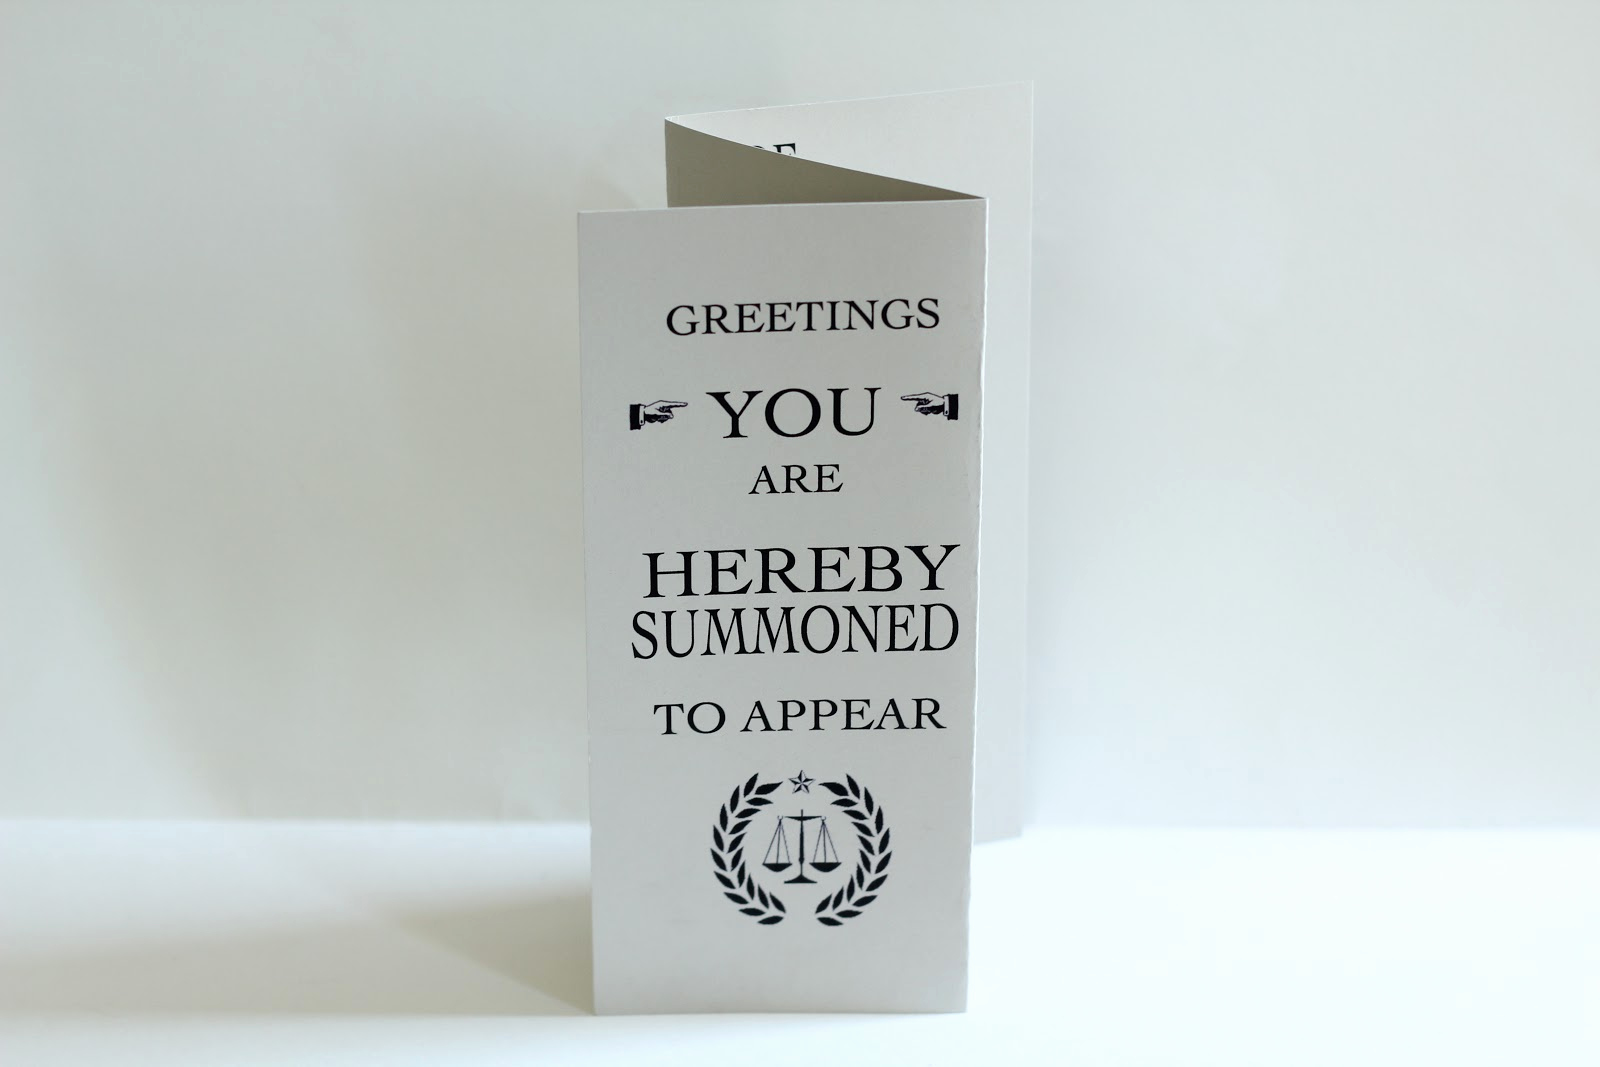 Law School Graduation Announcements Lovely Create Cook Survive Law School Make something Law